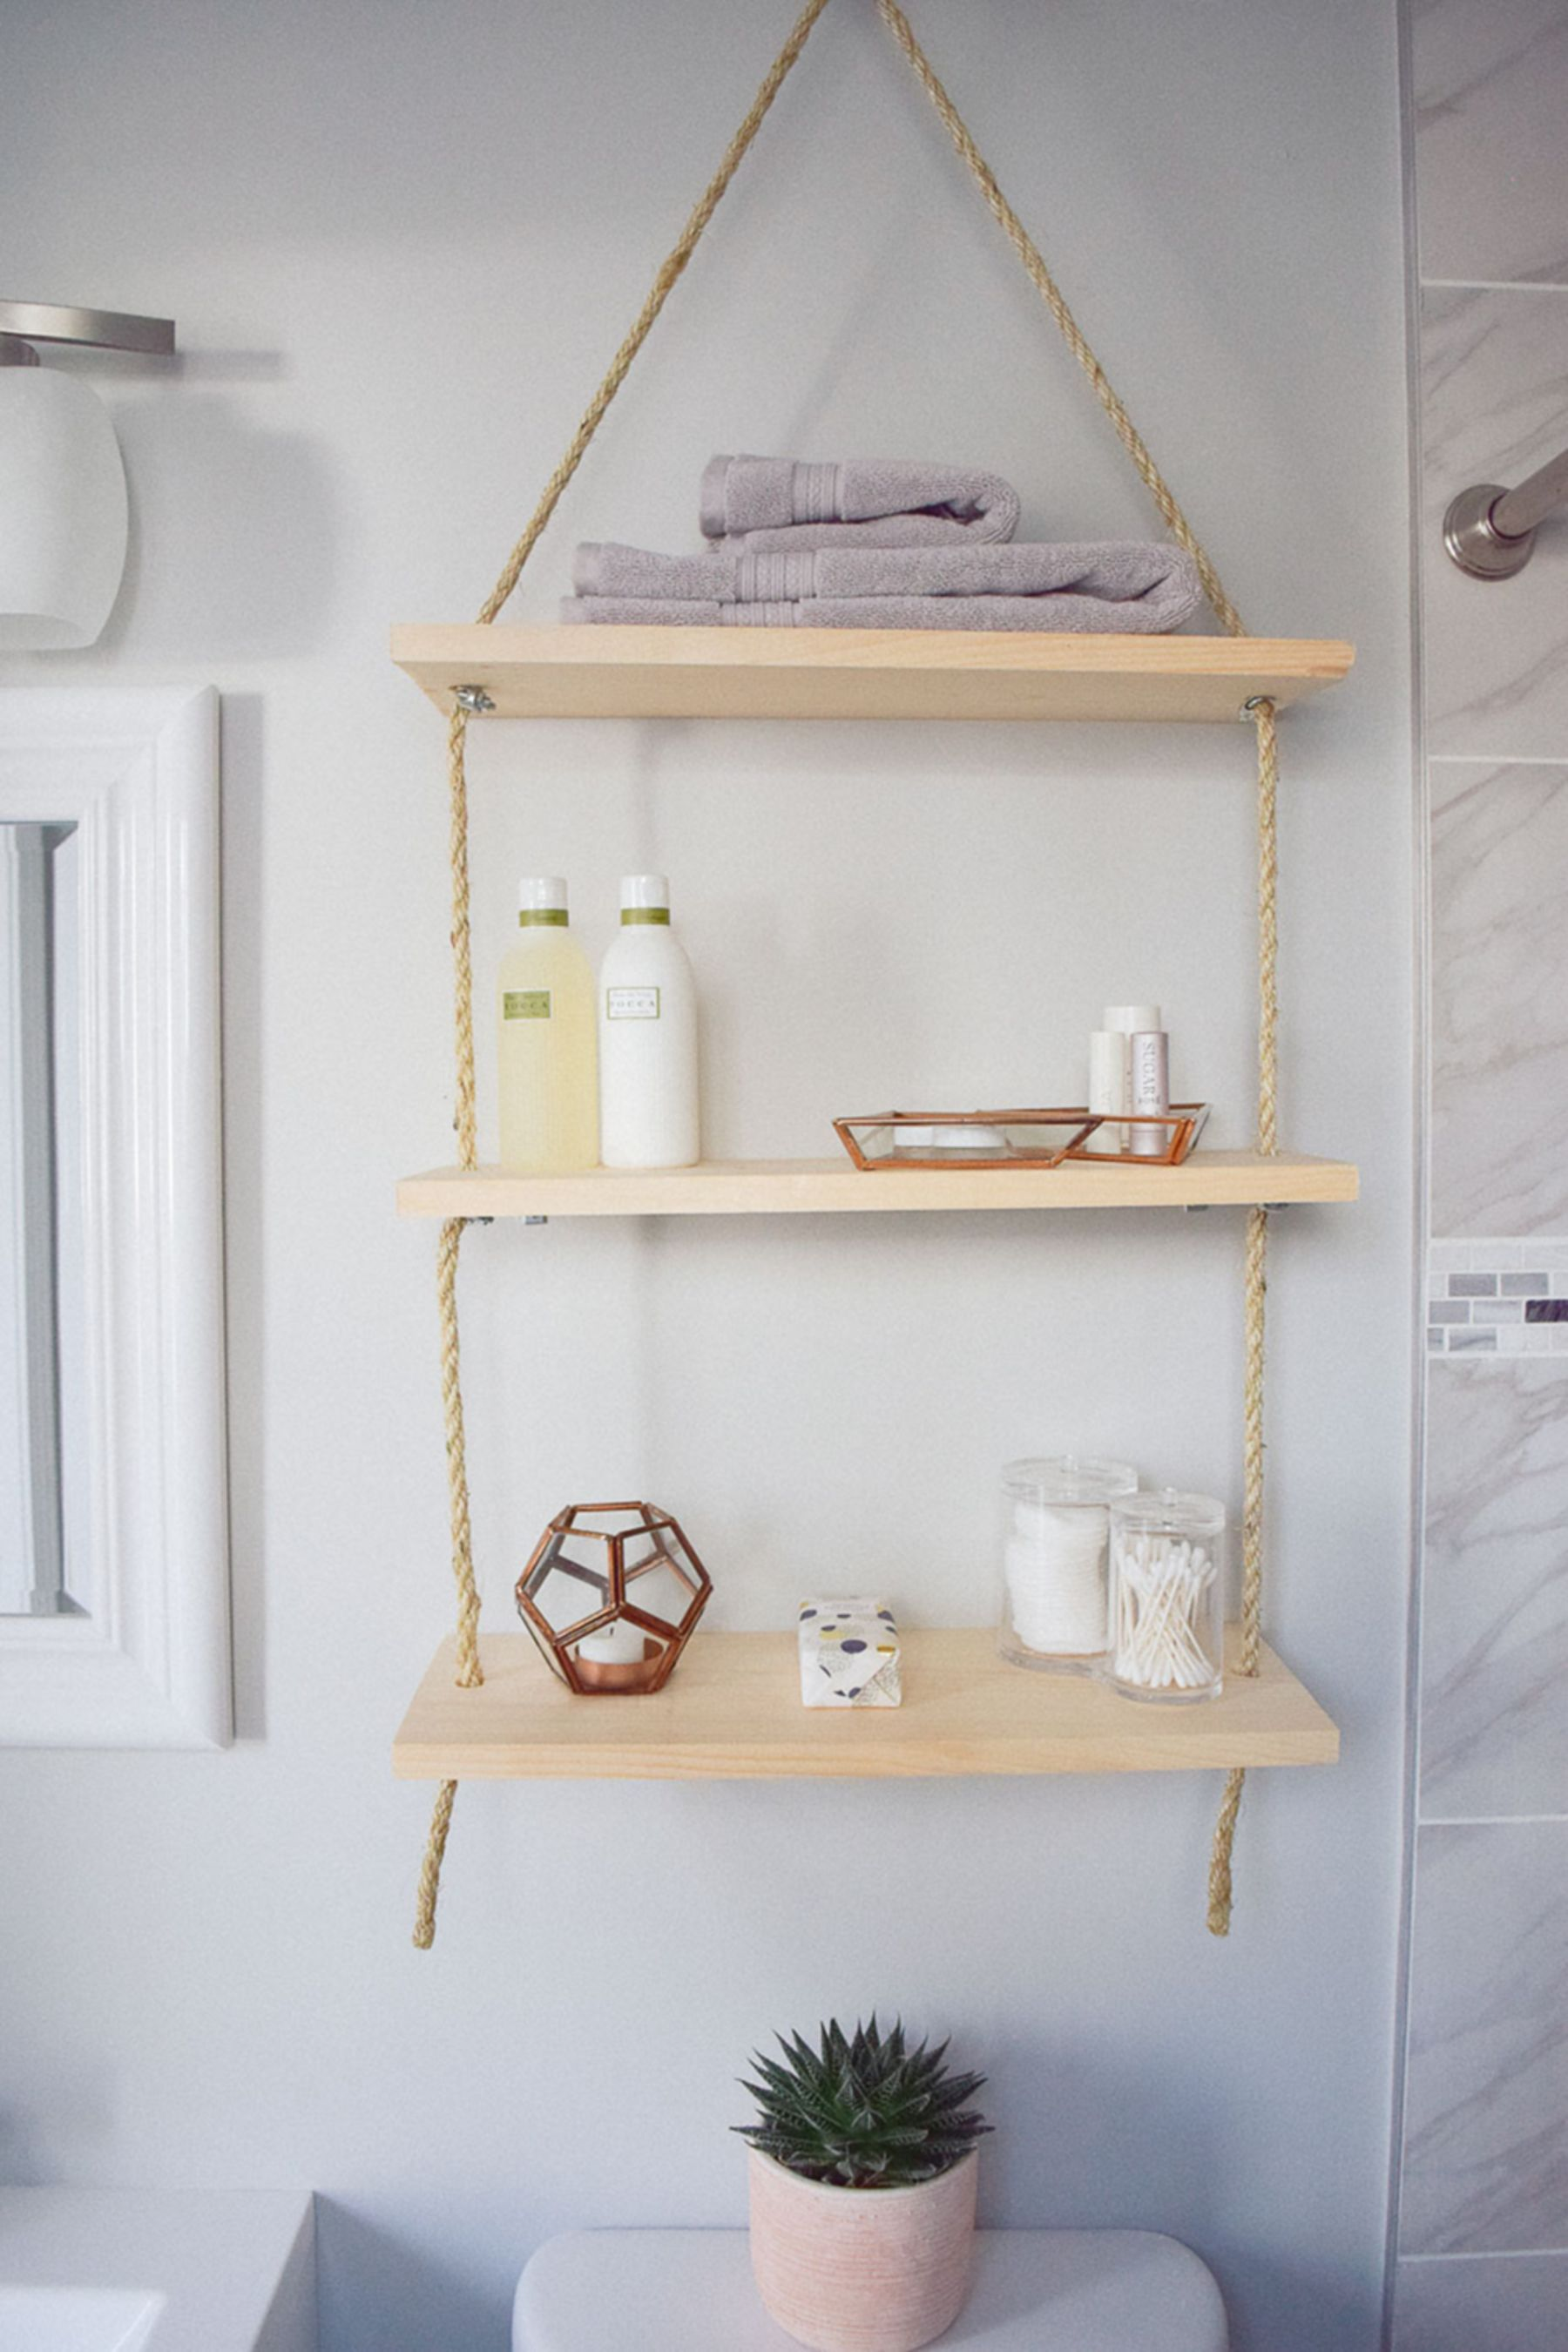 10 Most Creative Rustic Diy Hanging Shelf Design Ideas To Make Your Home Interior Beauty In 2020 Diy Hanging Shelves Diy Wall Shelves Shelf Design